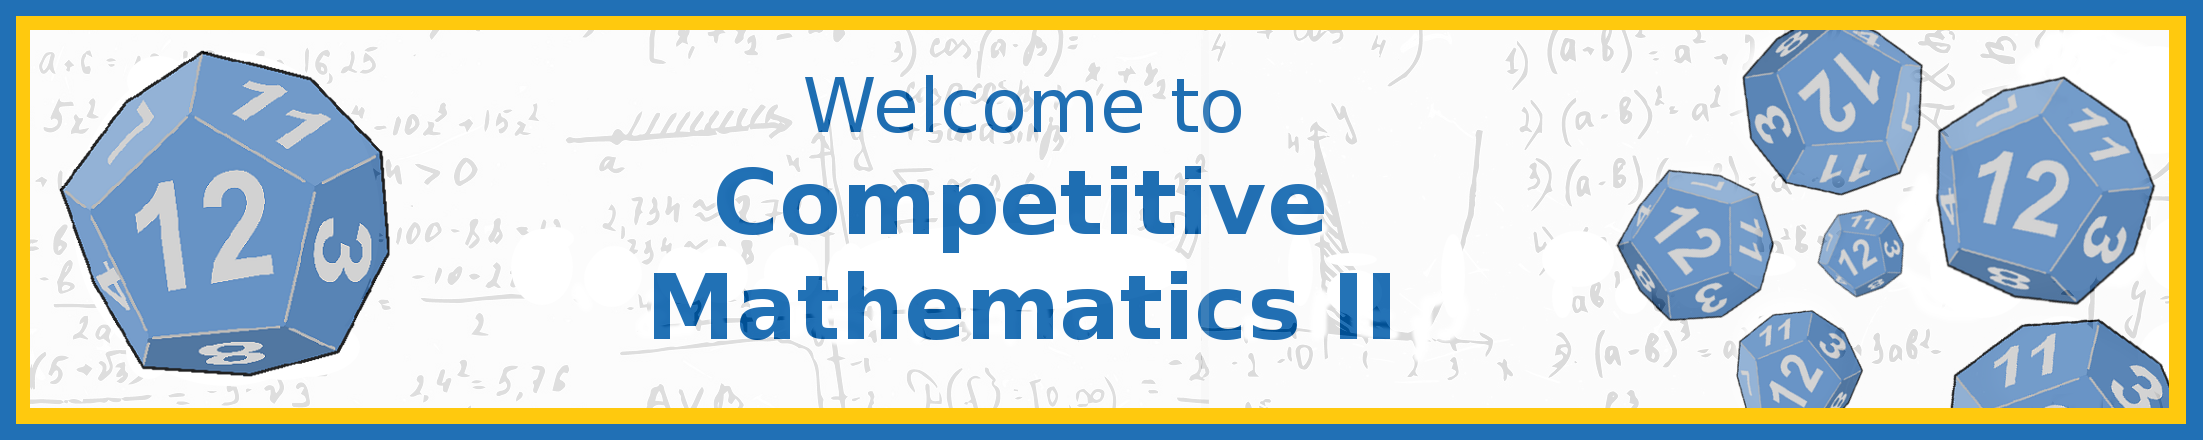 Welcome to Competitive Mathematics II